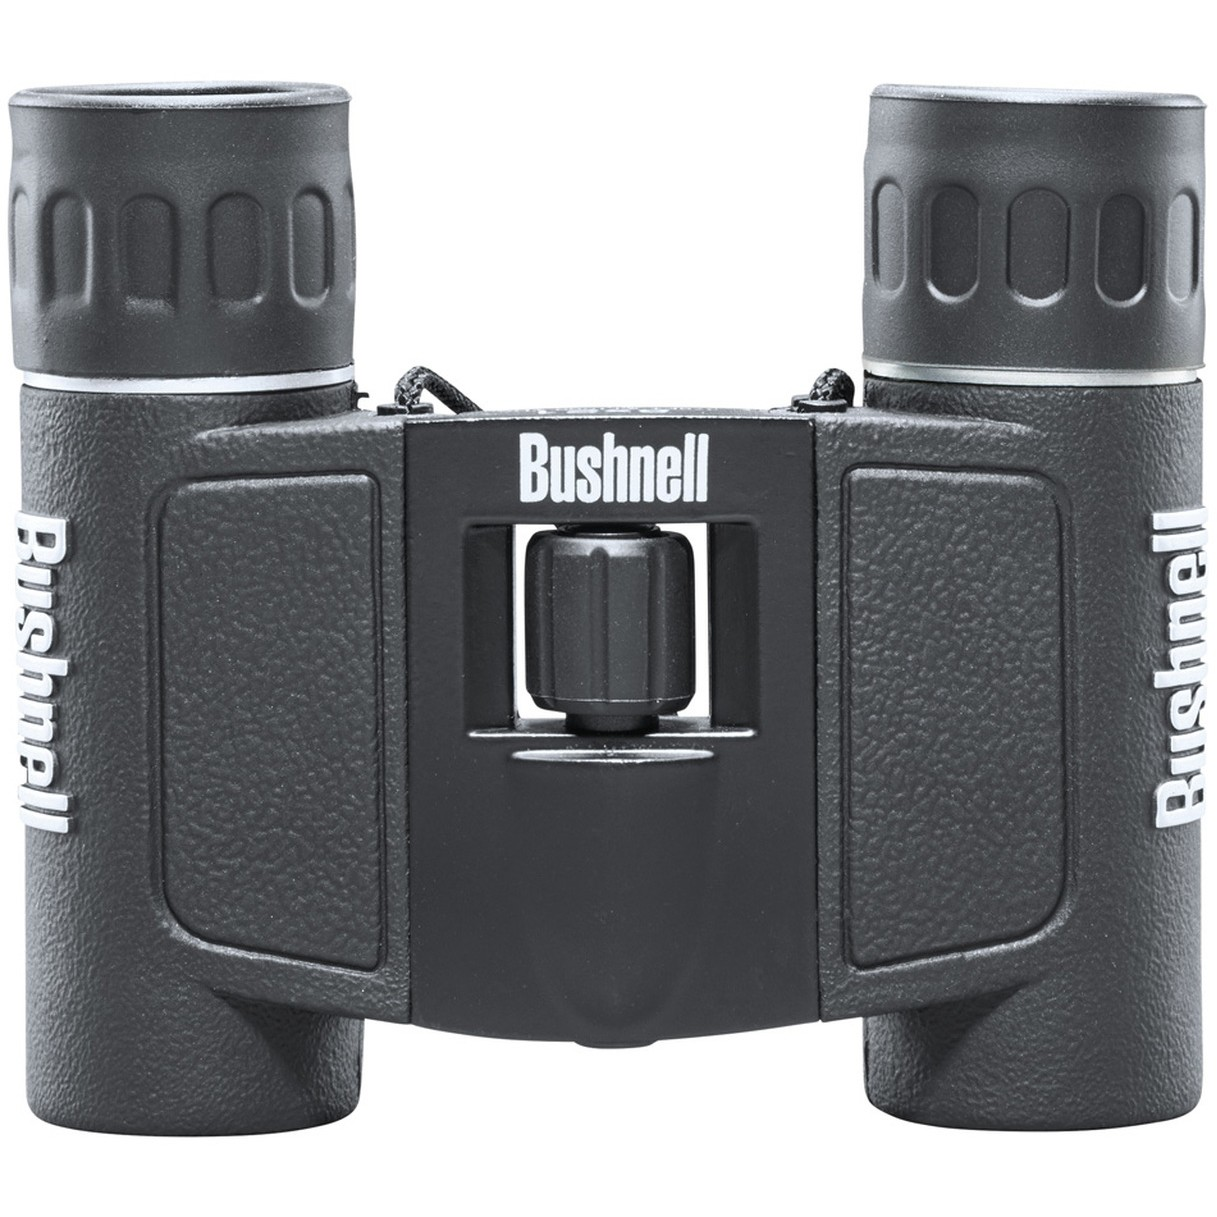 Bushnell 8x21 Powerview Binocular